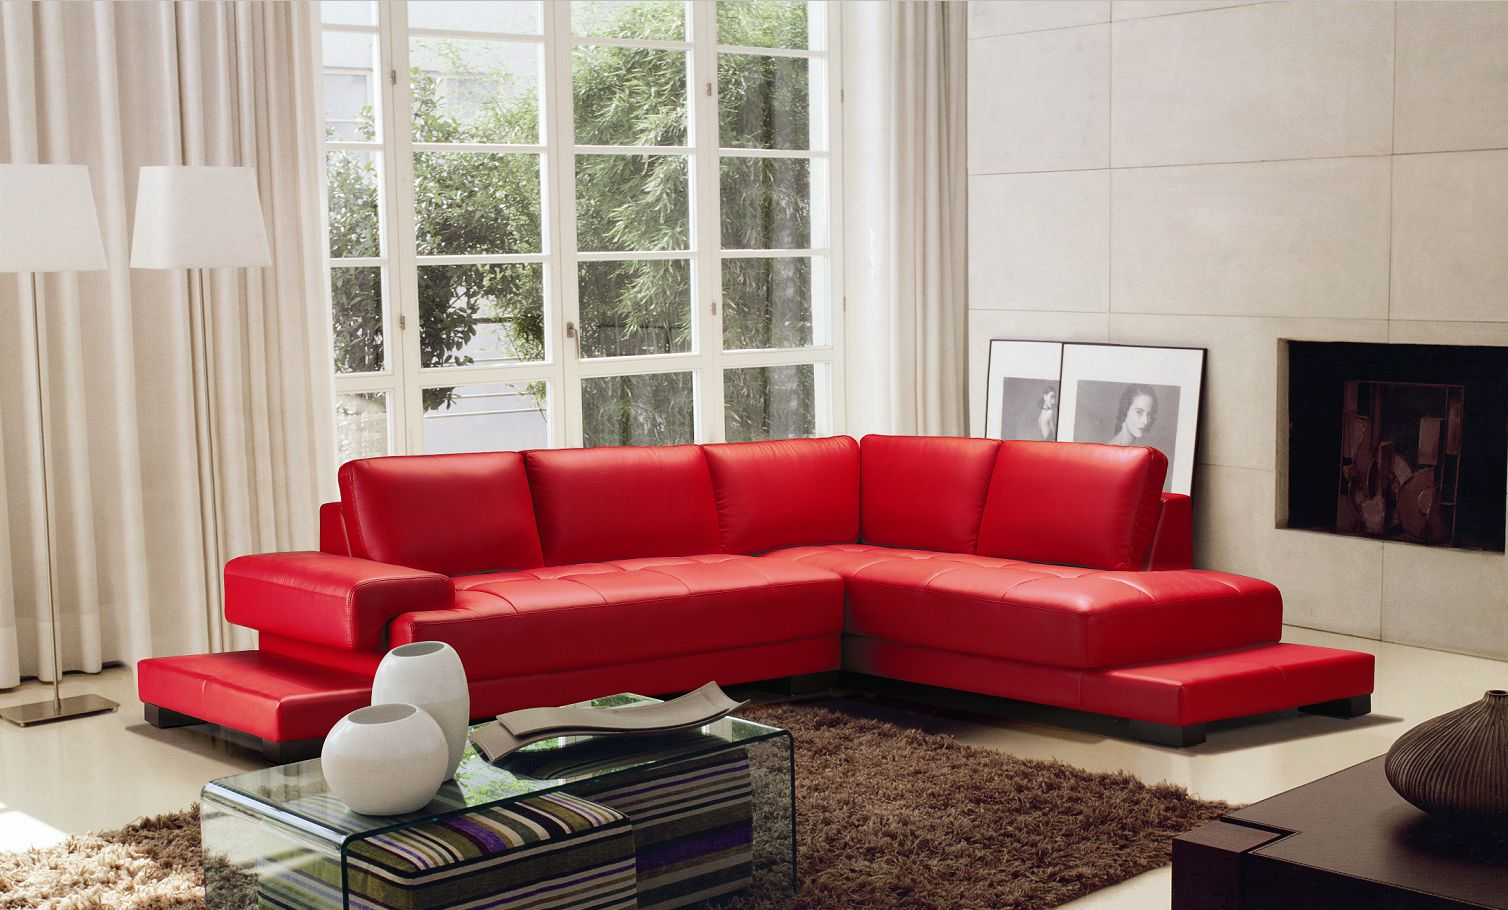 design co products page categories living room 2226 red